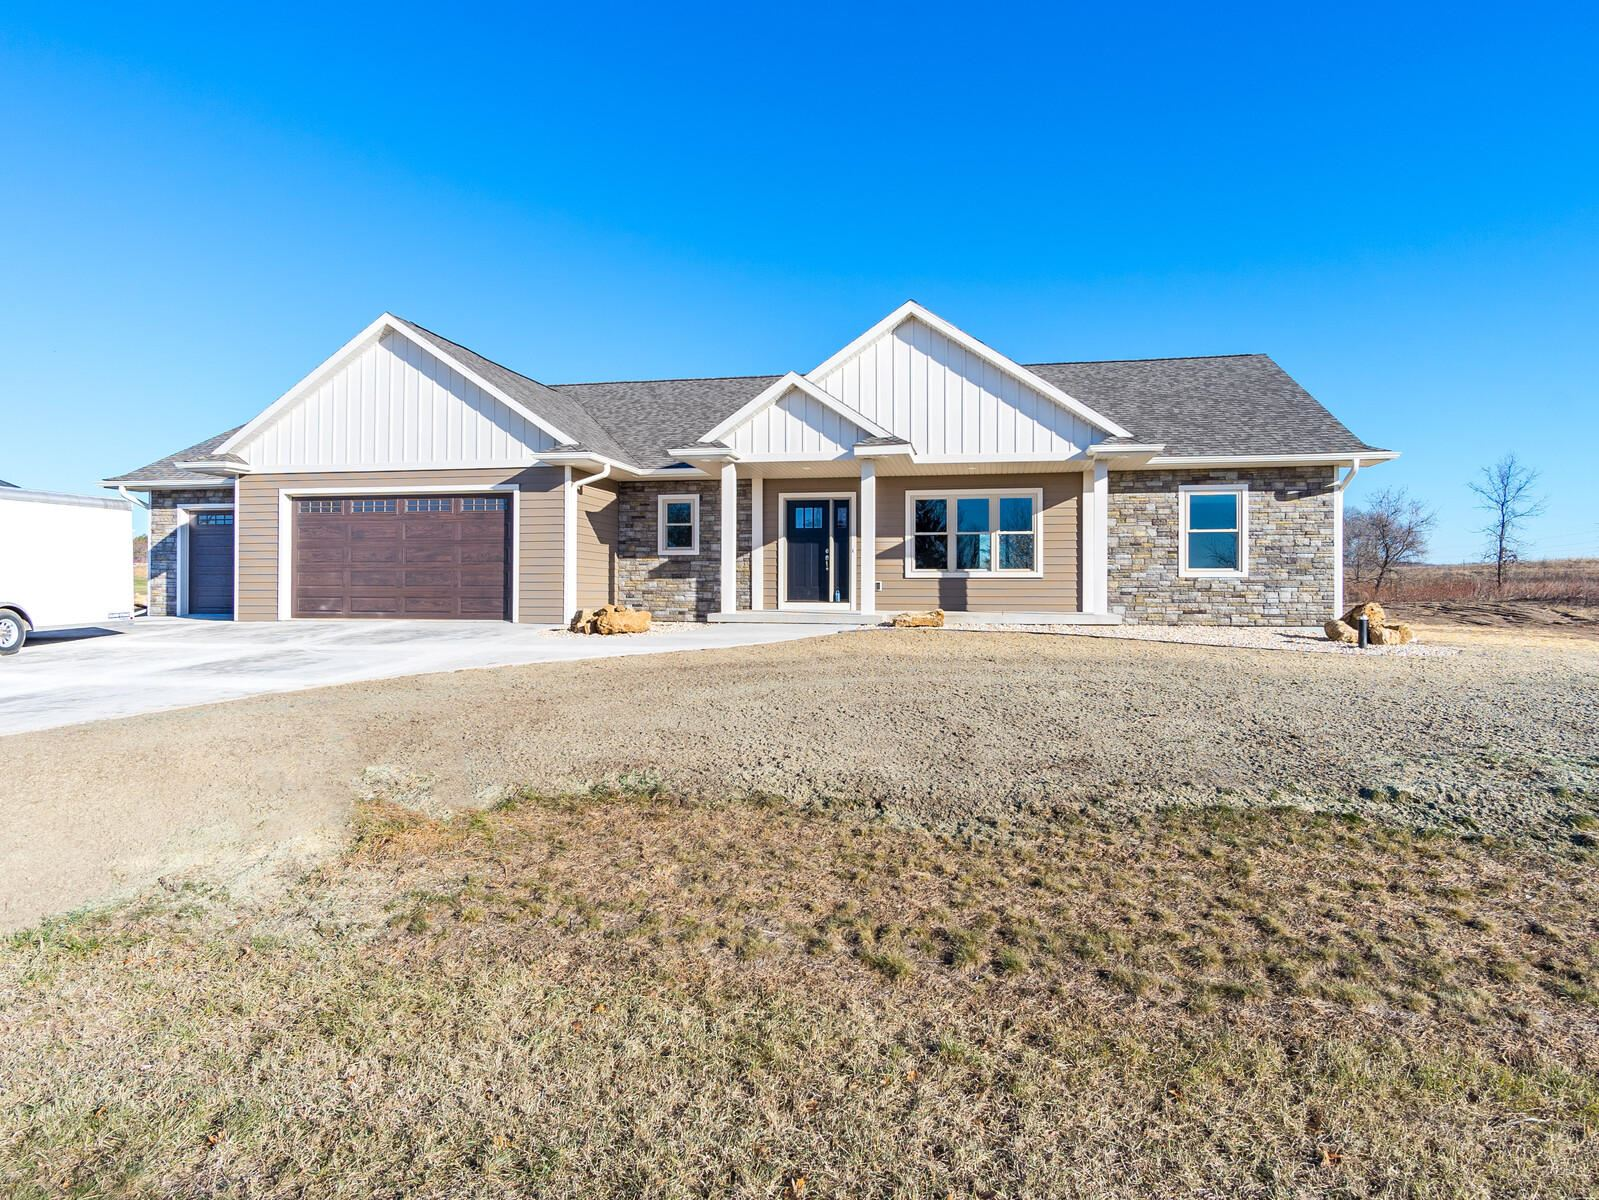 N6804 SAND PRAIRIE CT, Holland, WI 54636 - MLS#: 1720816